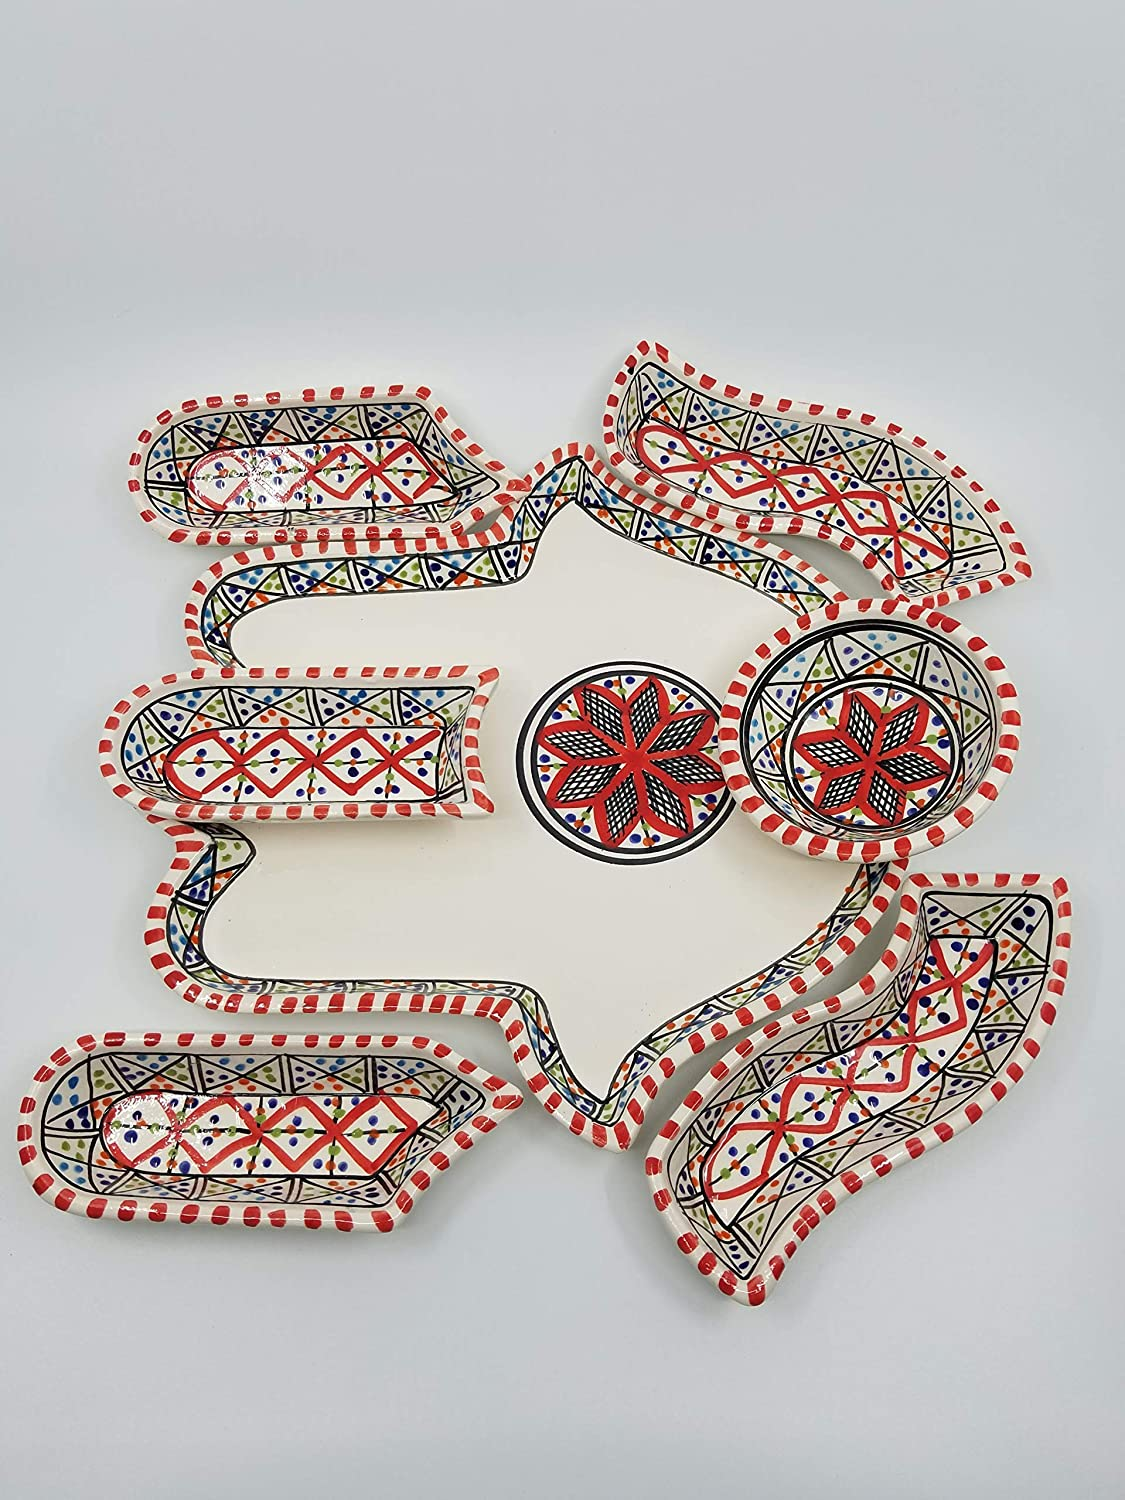 Large Red Hamsa Palm, Hand of Fatima Dippers, 7 Pieces of Ceramic Dipping and Serving Plates HandMade, Hand-painted, plate, dish, Wedding Gifts, Birthday, Housewarming Gifts, Celebration